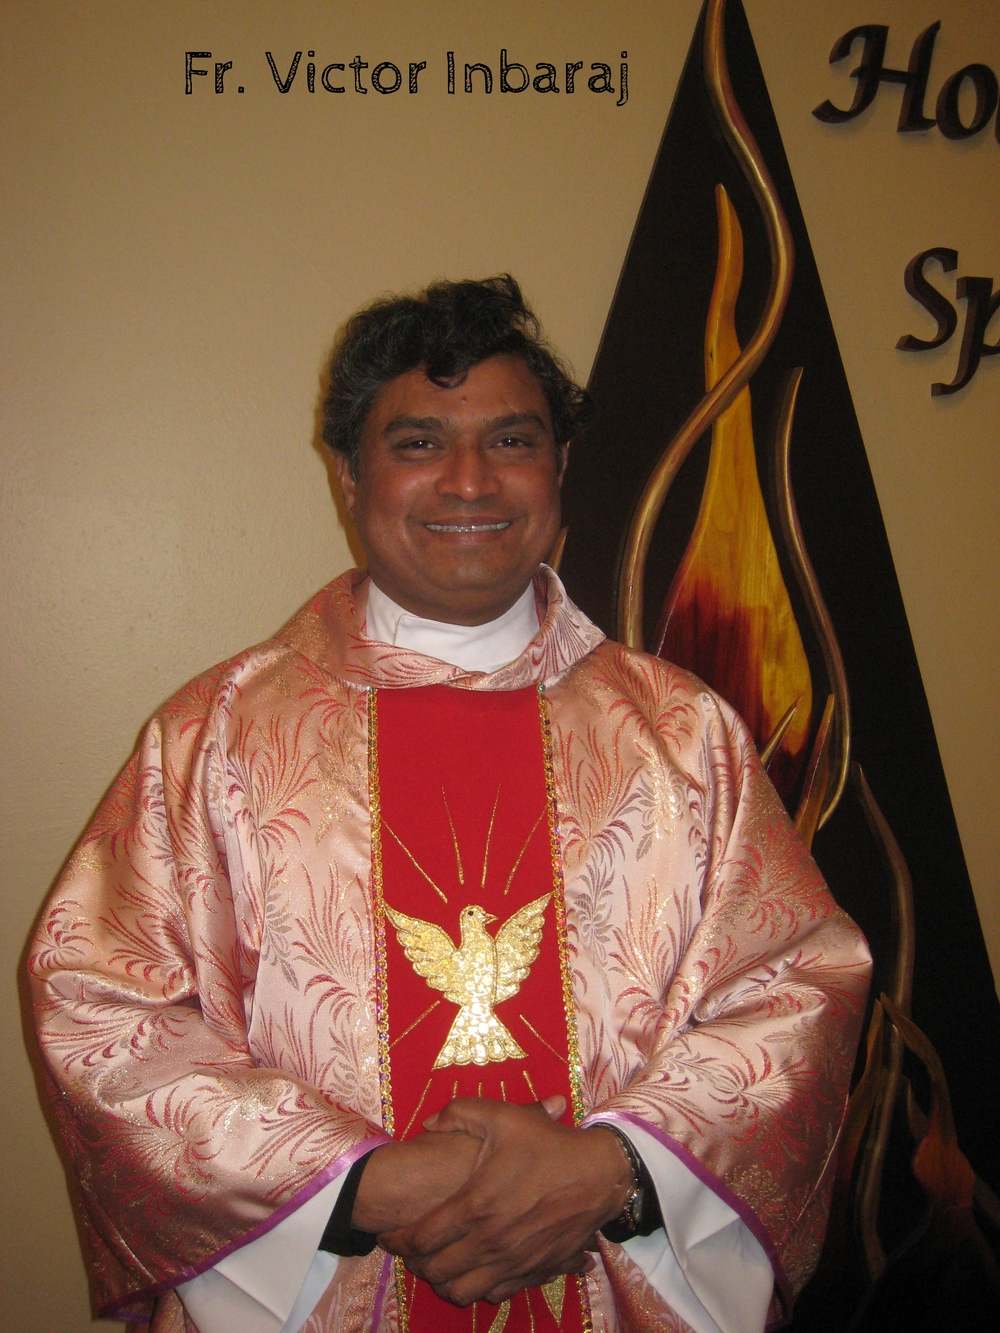 Father Victor Inbaraj